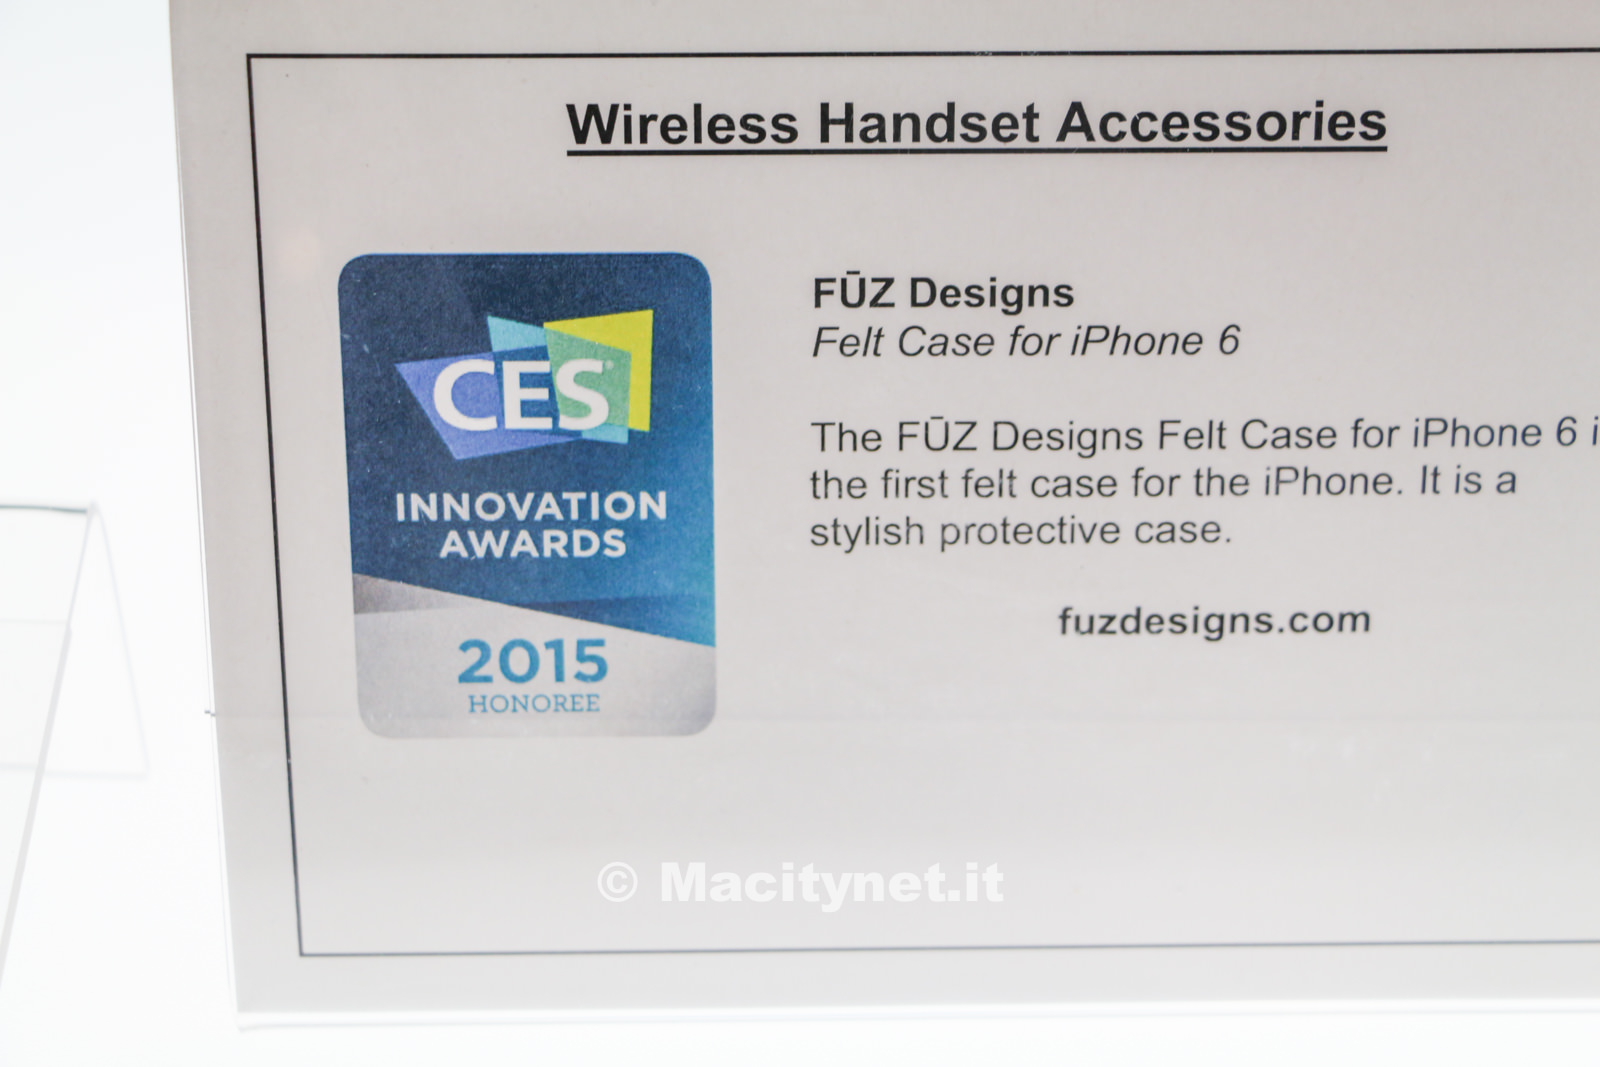 Felt Case, premiata al CES la prima custodia in feltro per iPhone 6 e Plus